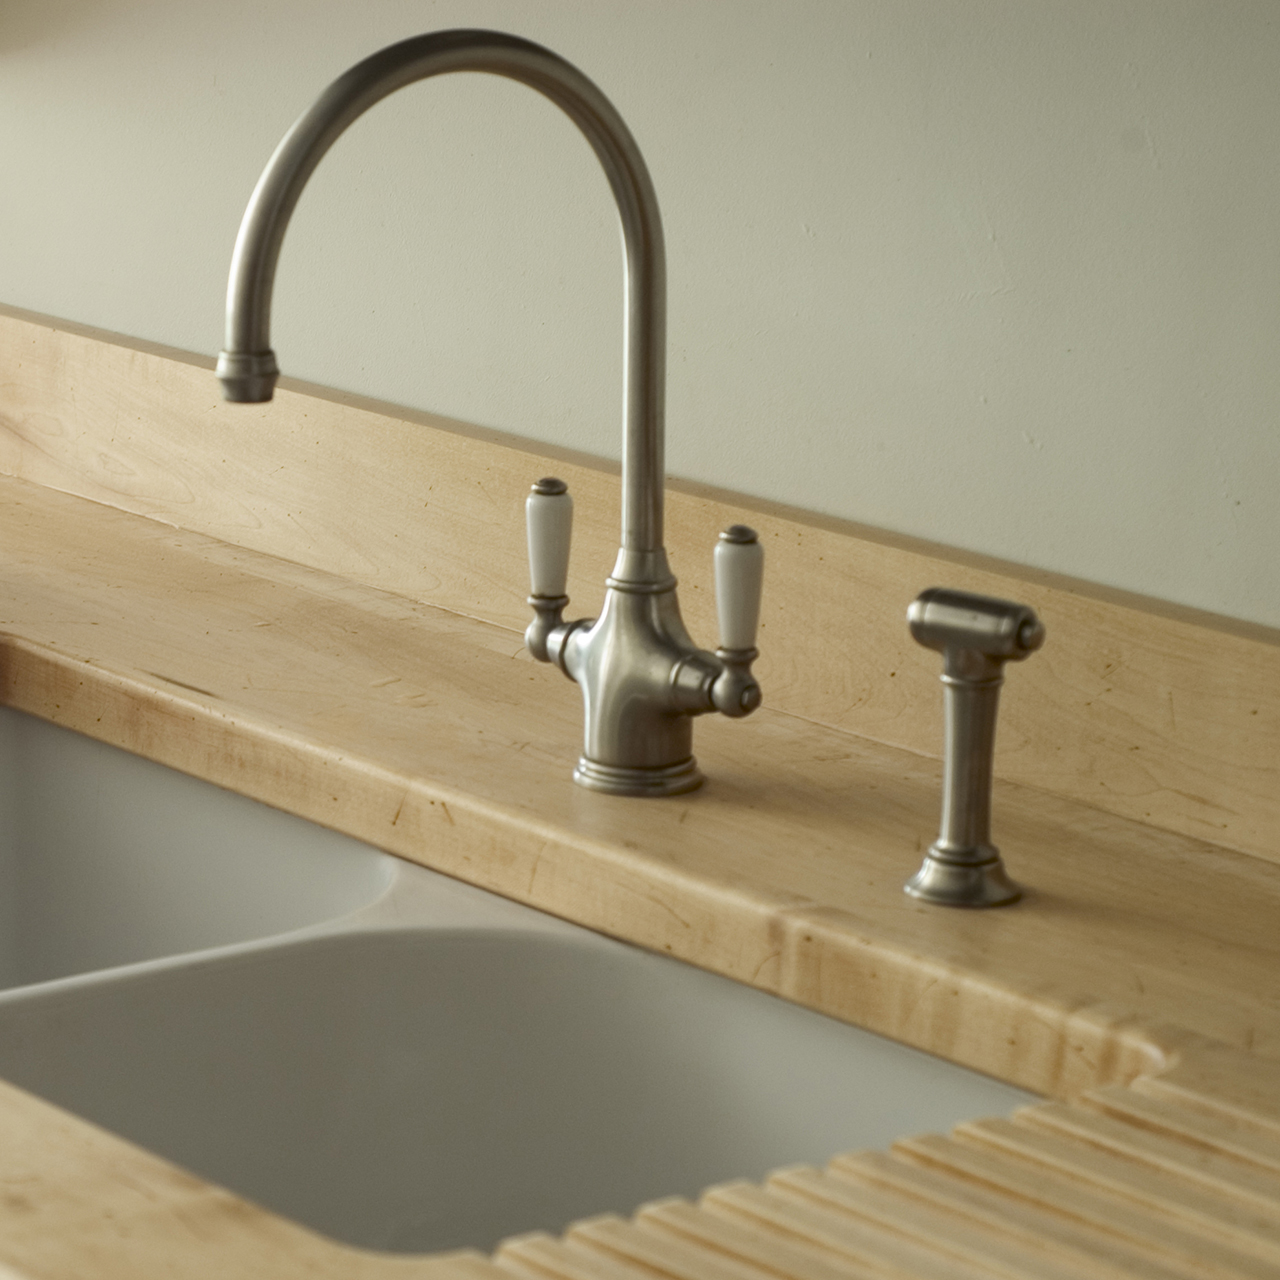 Rohl Kitchen Faucet. 100 Perrin And Rowe Kitchen Faucet Faucet Vigo ...